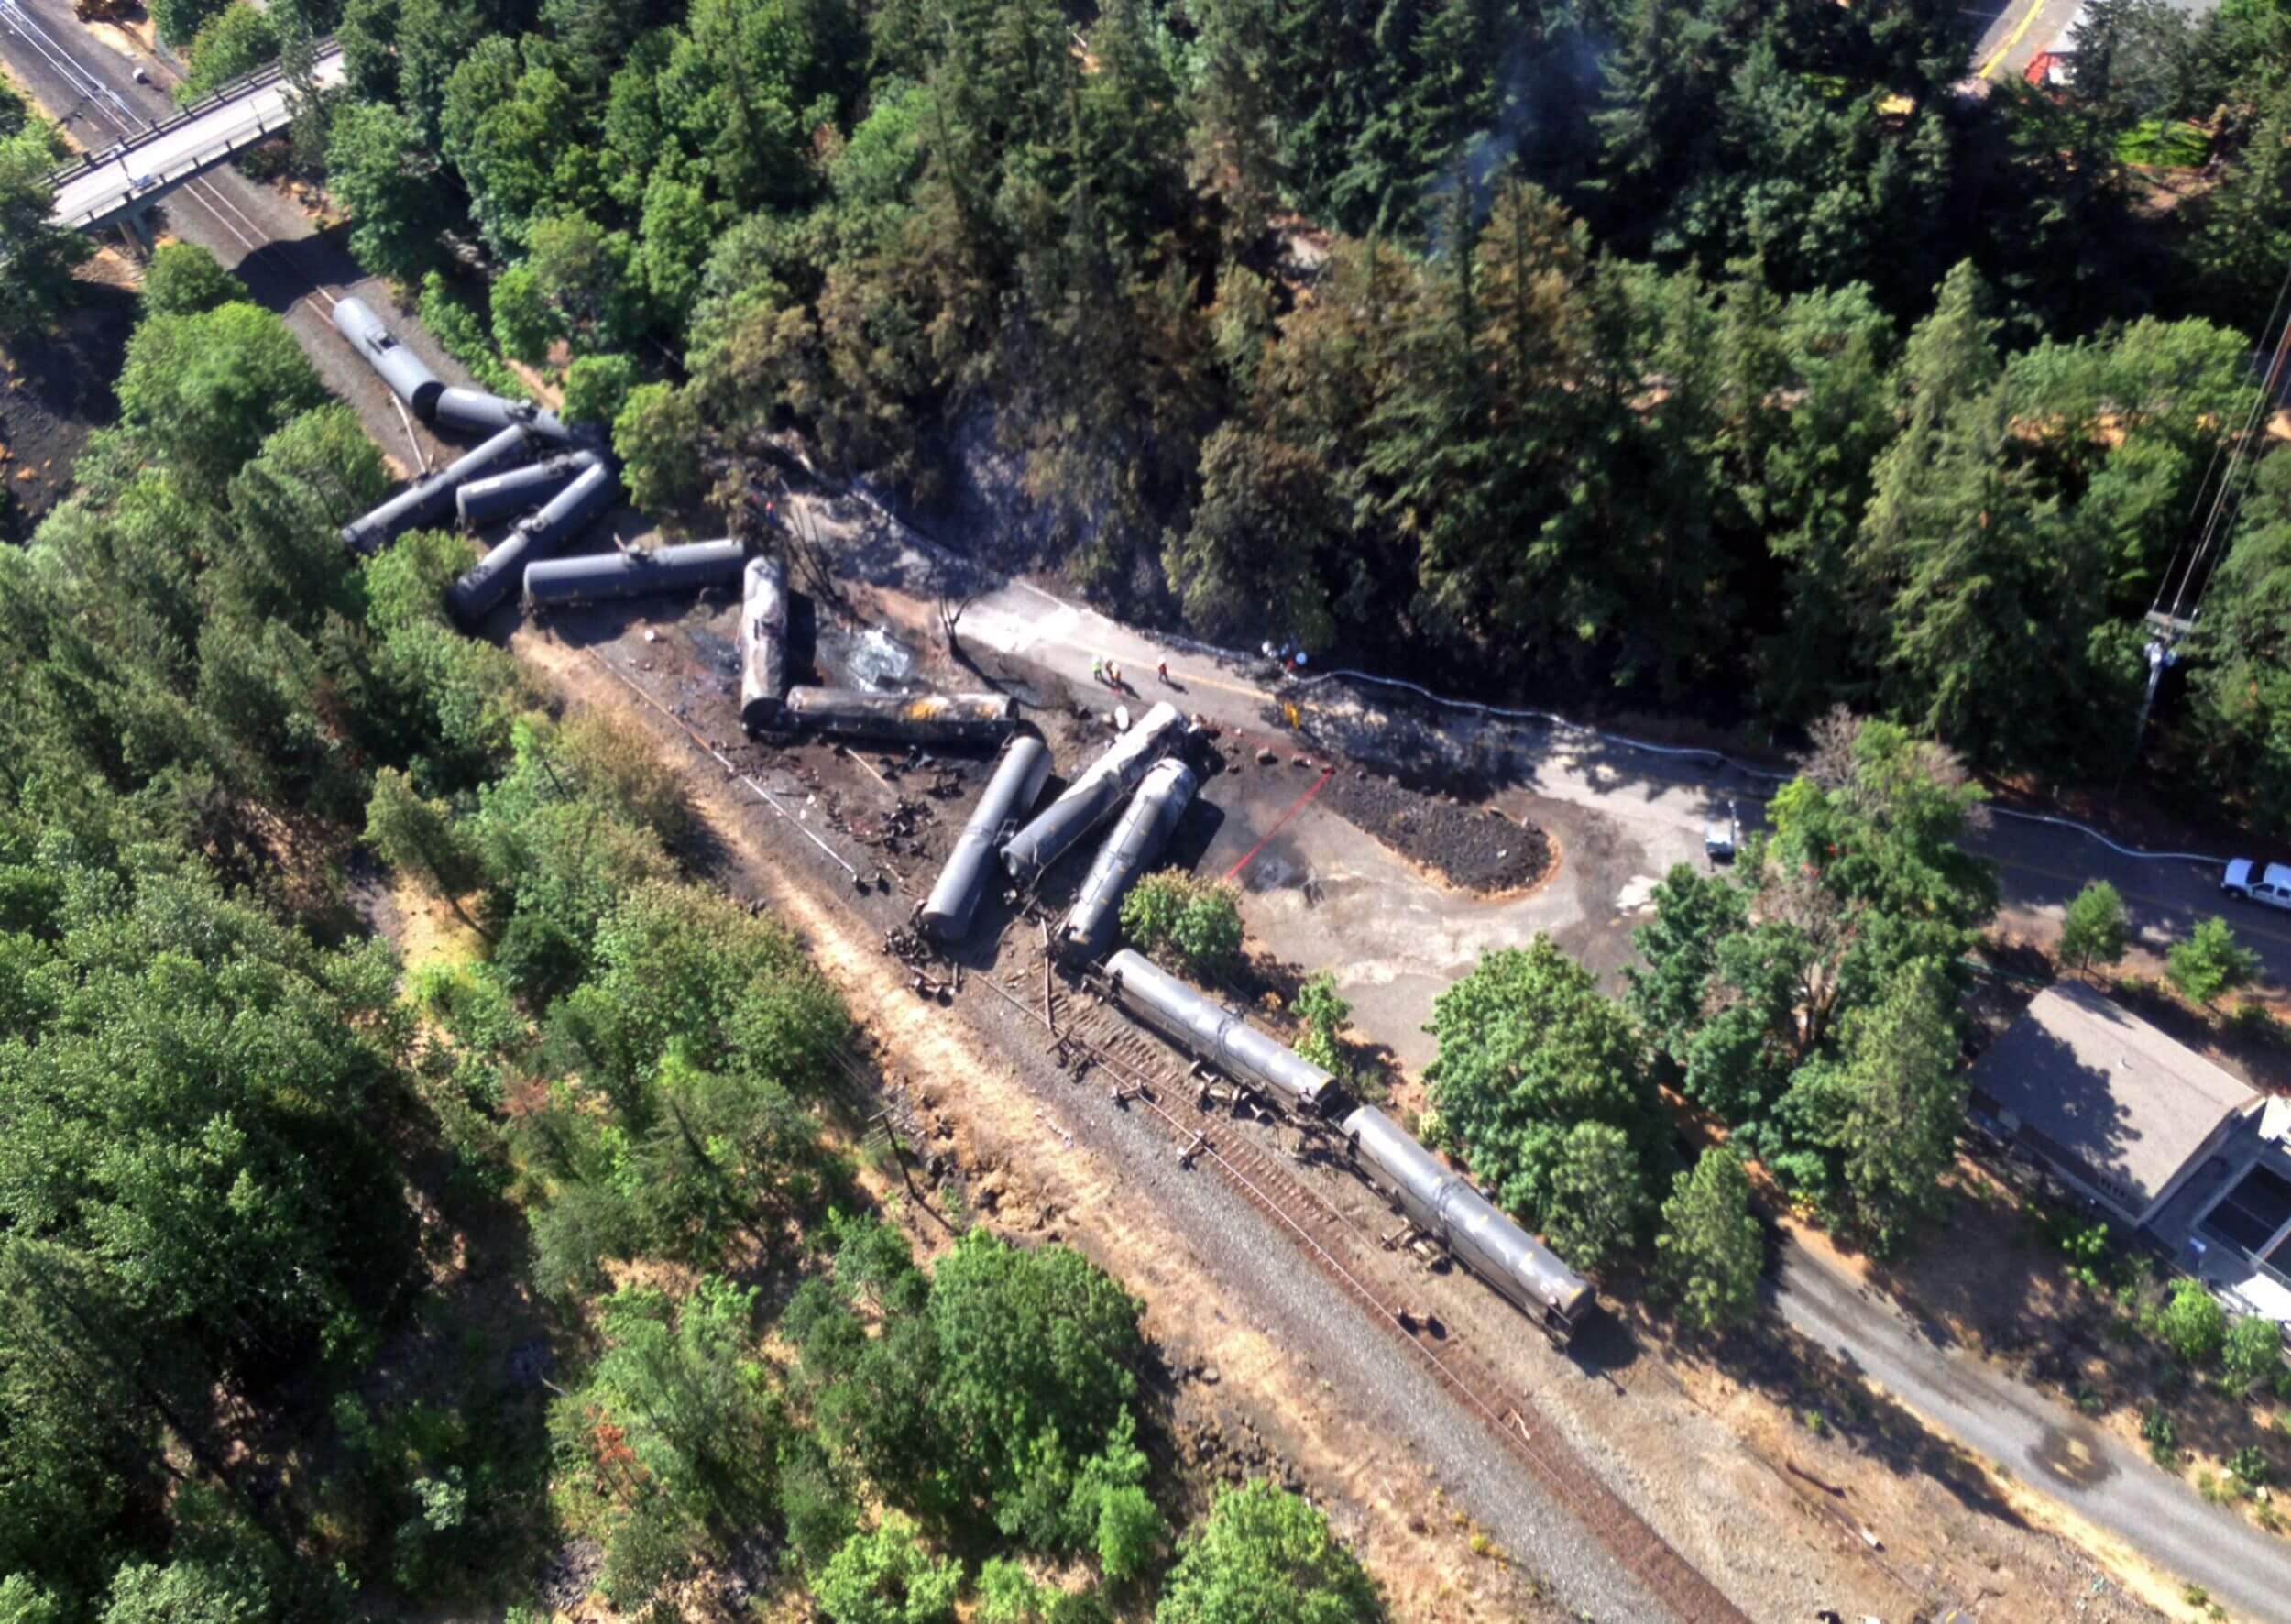 An aerial shot of a train that crashed on a track. It is surrounded by green trees.